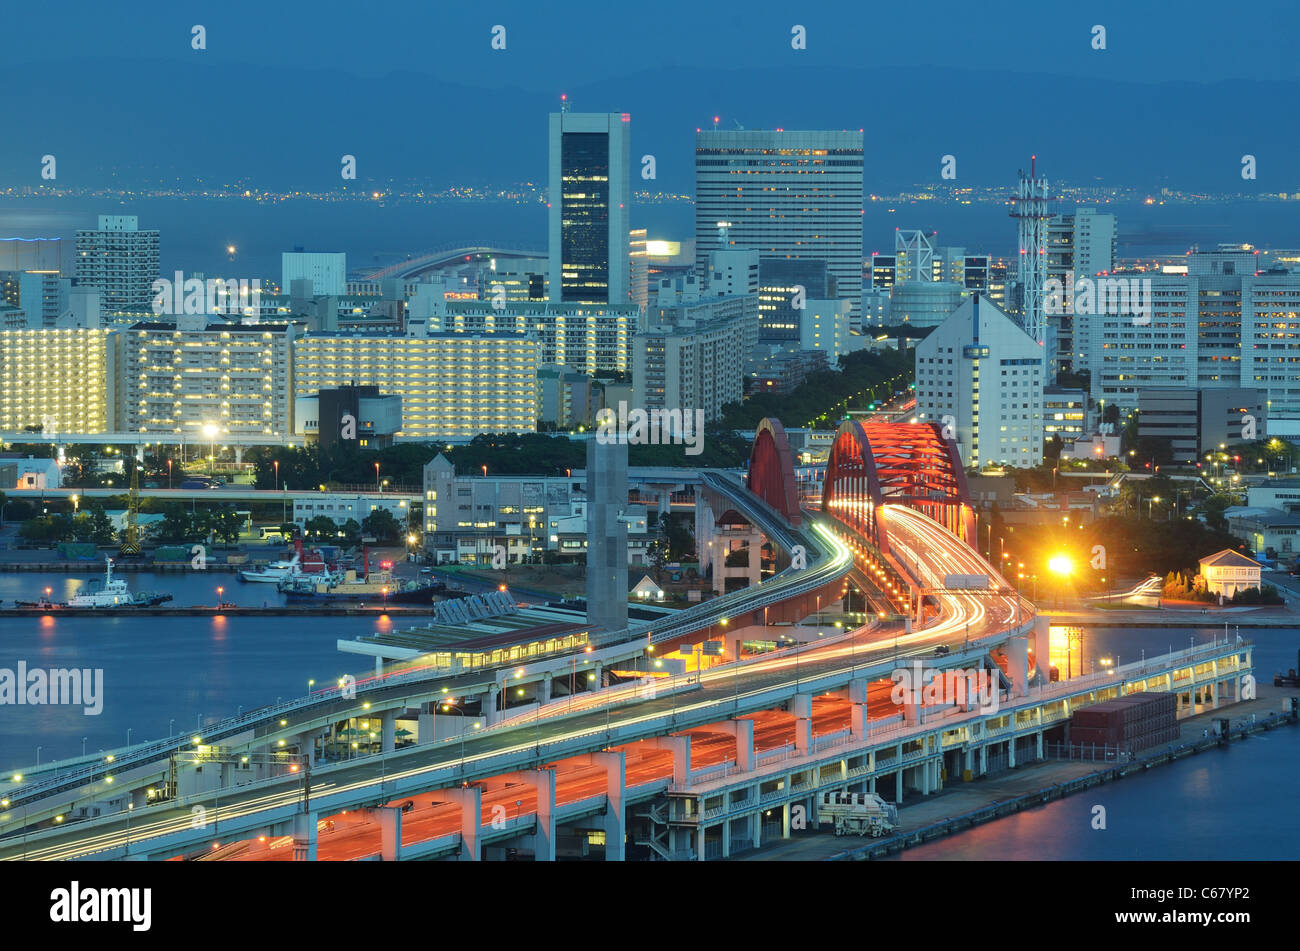 Port Island in Kobe, Japan. - Stock Image